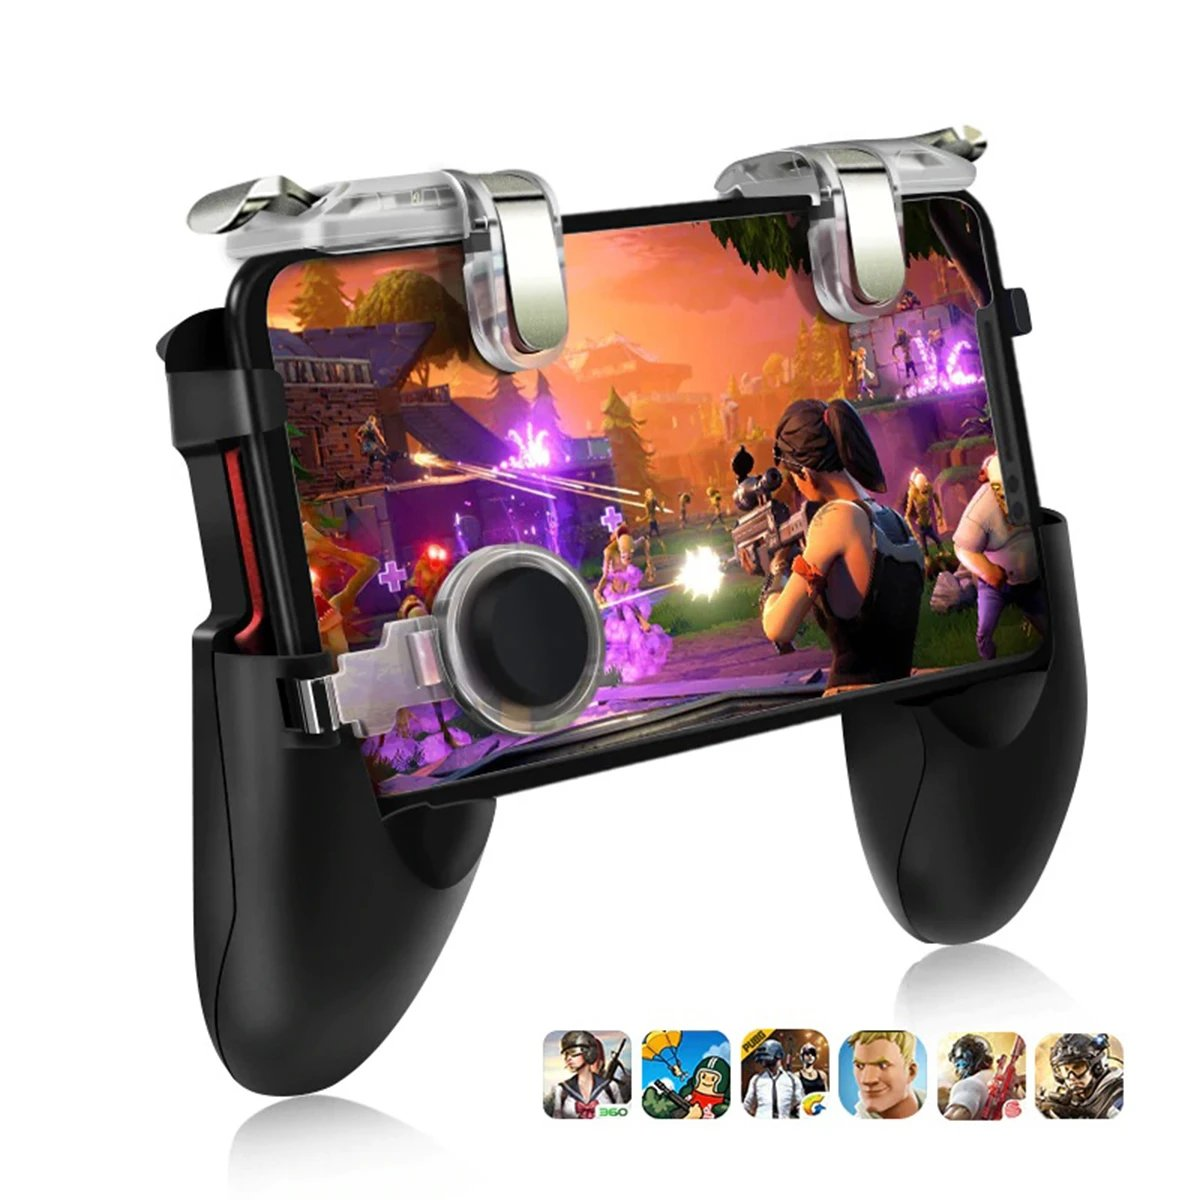 Mobile Phone Gaming Controller for Android & iPhone